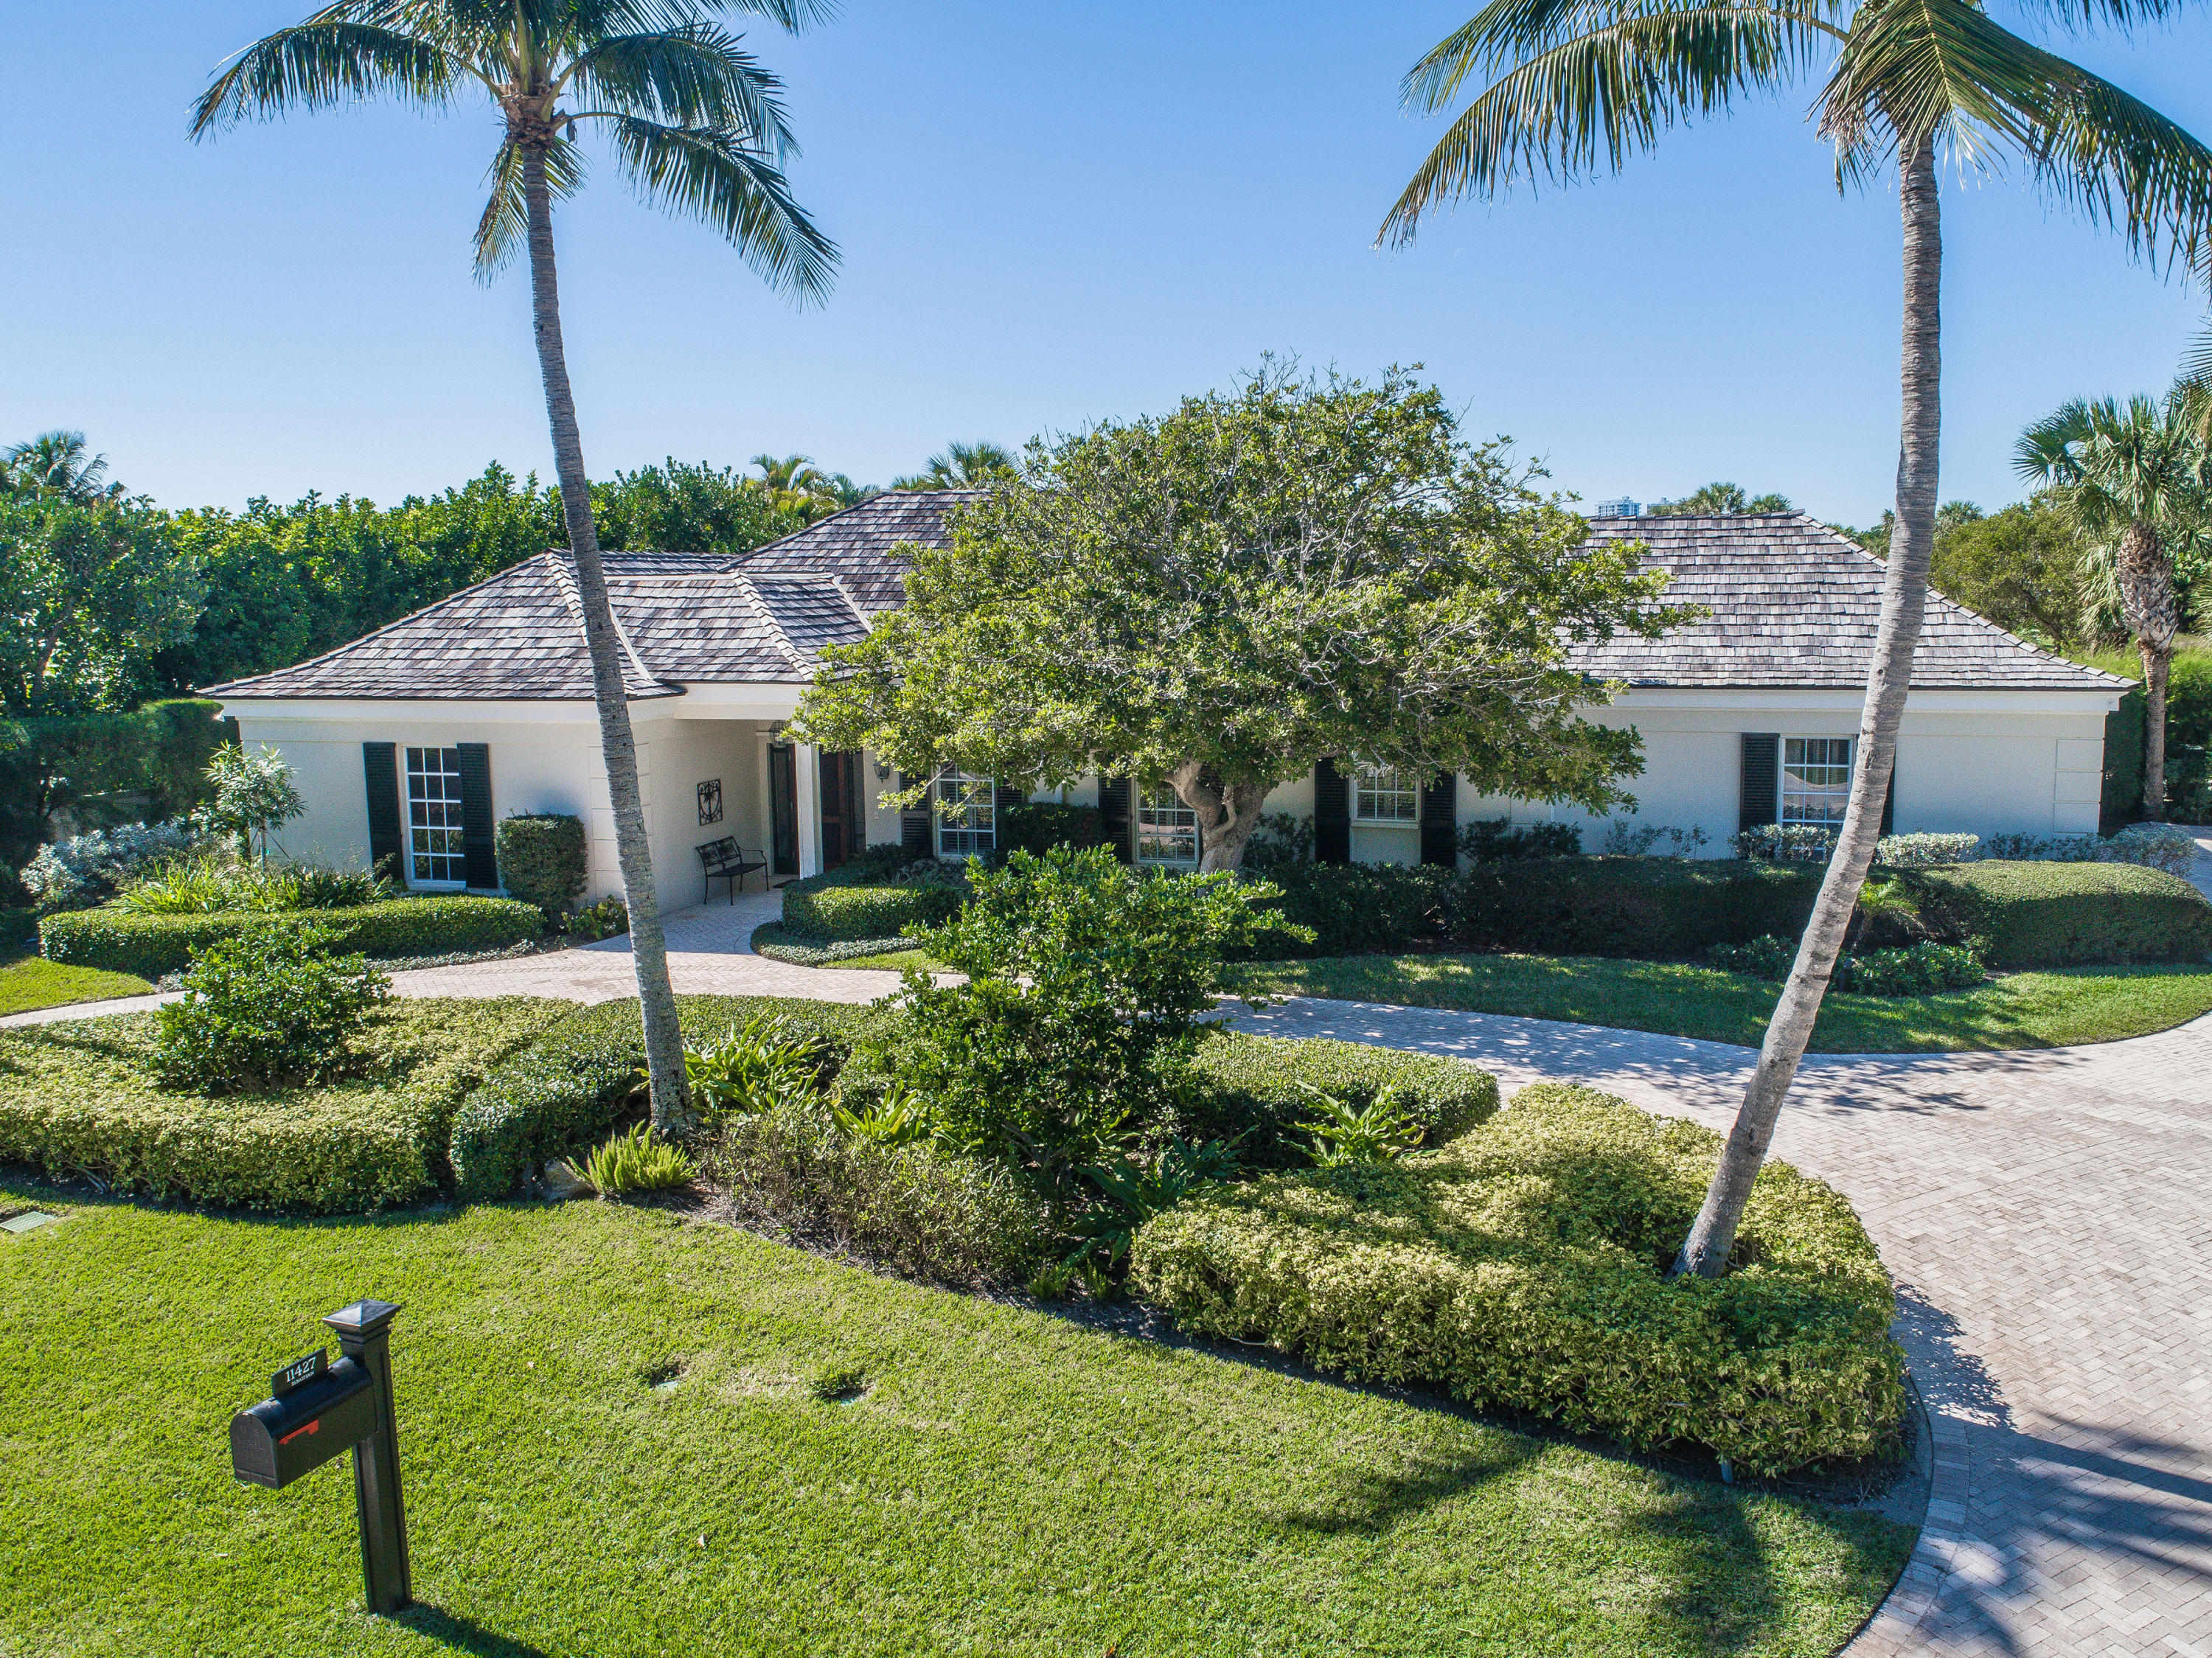 New Home for sale at 11427 Turtle Beach Road in North Palm Beach